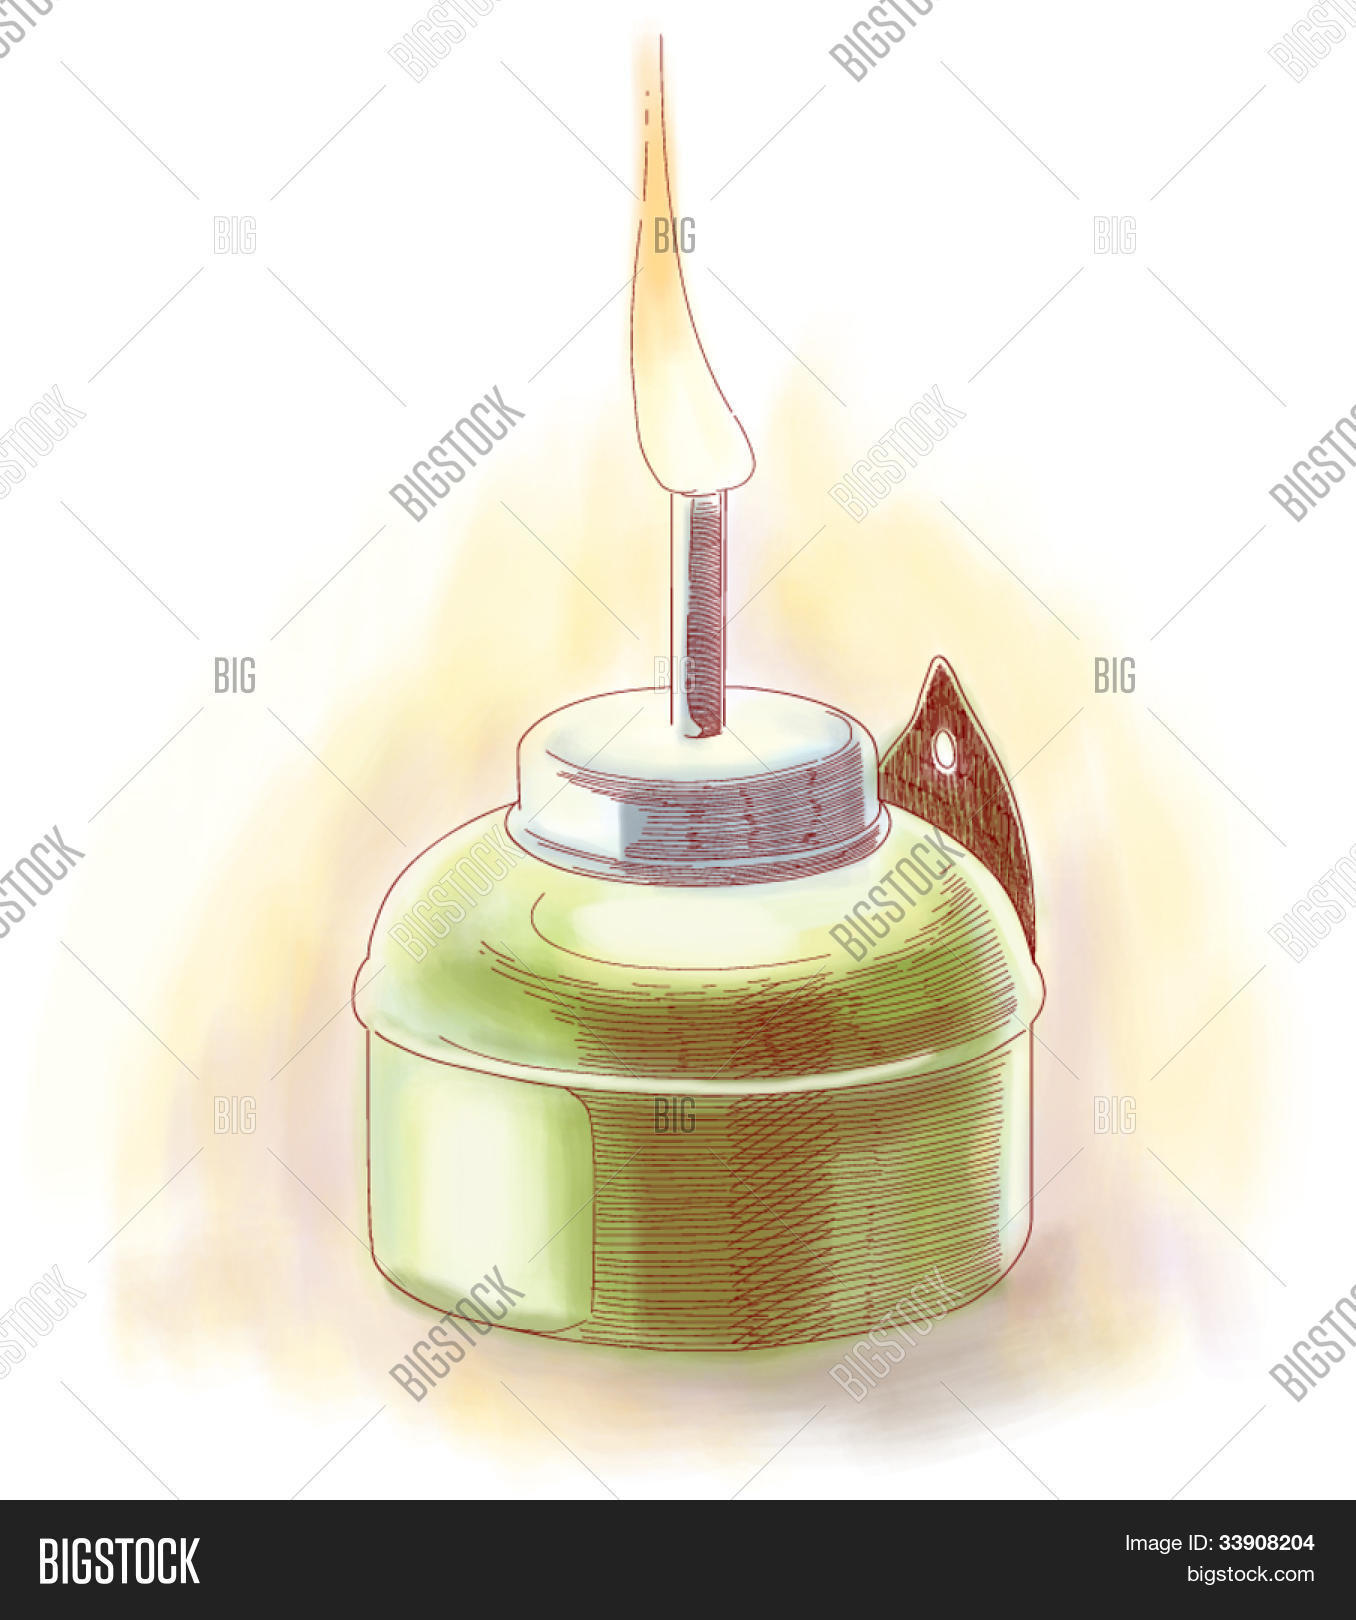 Vector Muslim Oil Lamp - Pelita Vector  for Oil Lamp Clip Art  110ylc